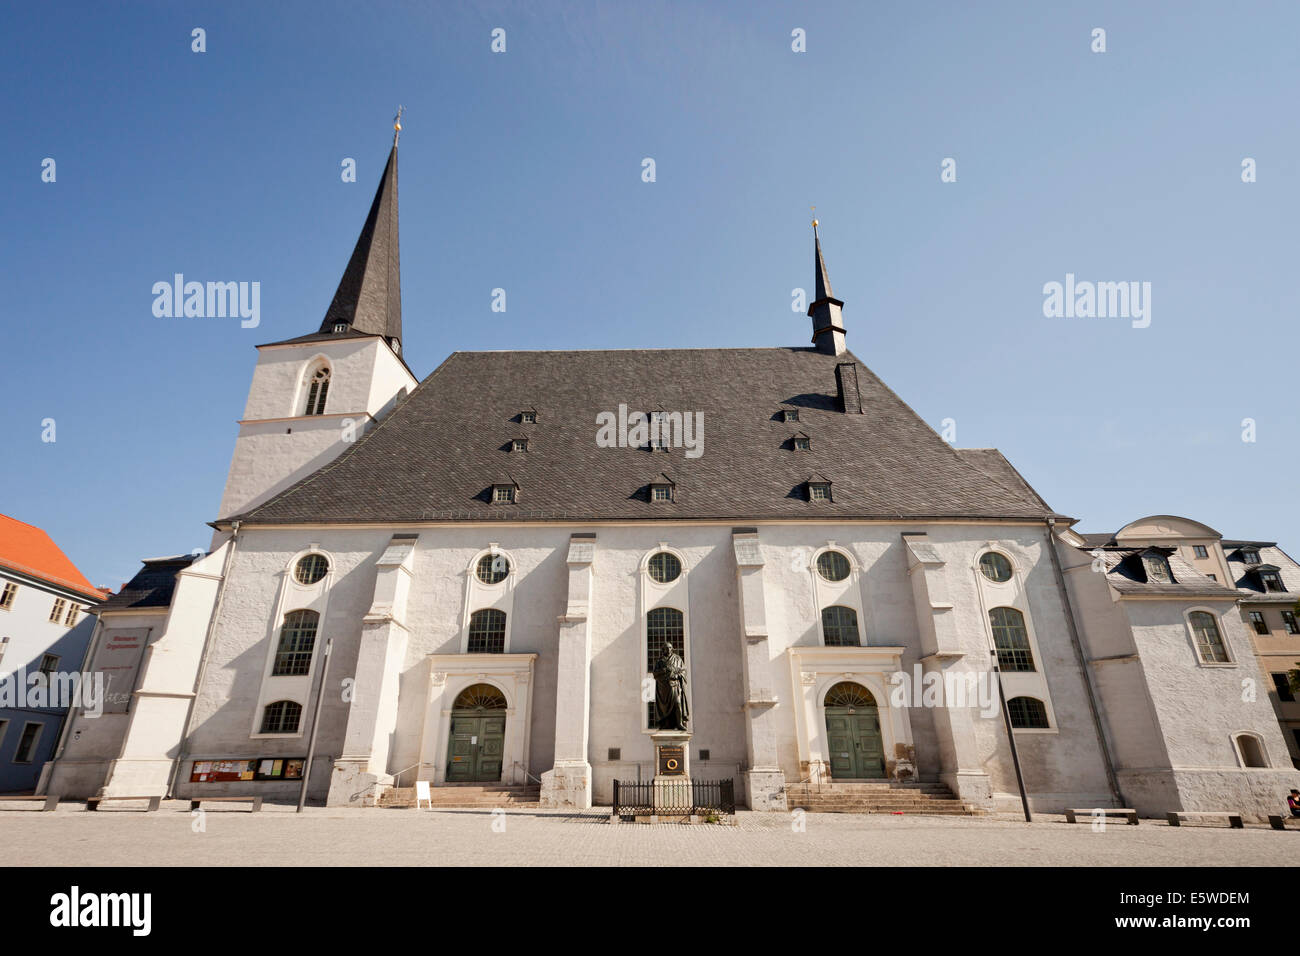 the evangelical St. Peter and Paul church at Herderplatz in Weimar, Thuringia, Germany, Europe - Stock Image